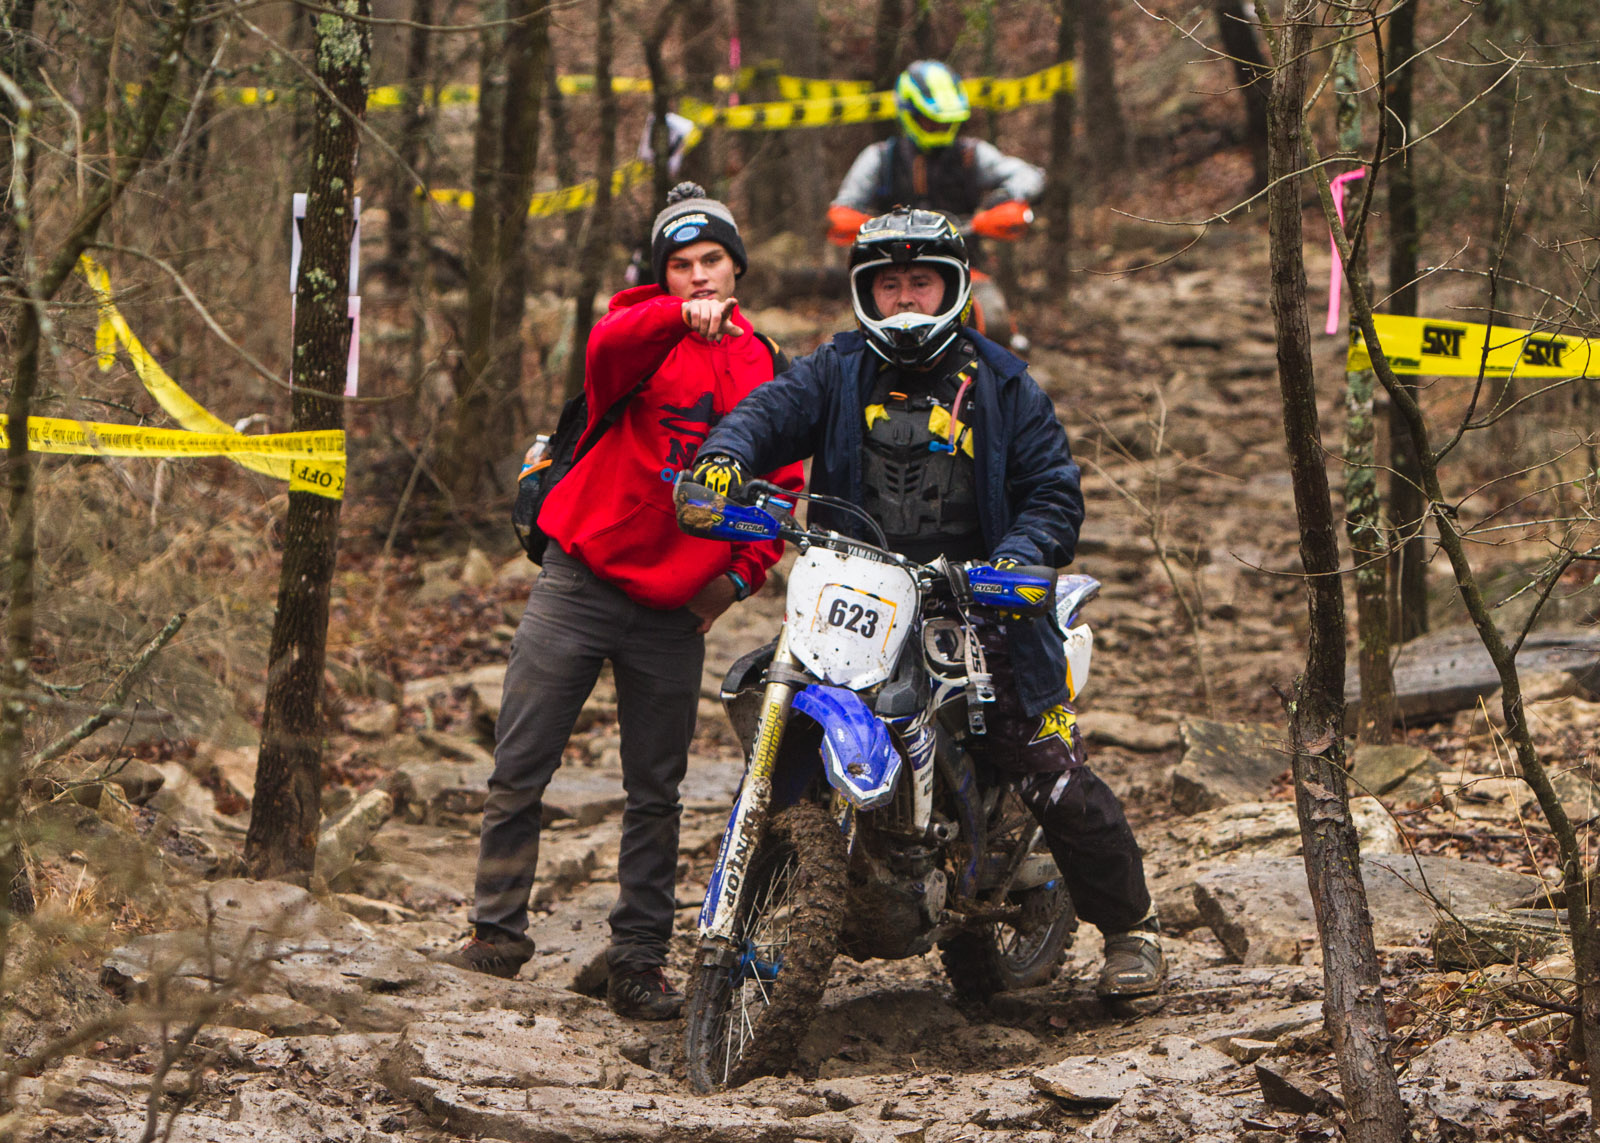 revlimiter-extreme-enduro-saturday-8